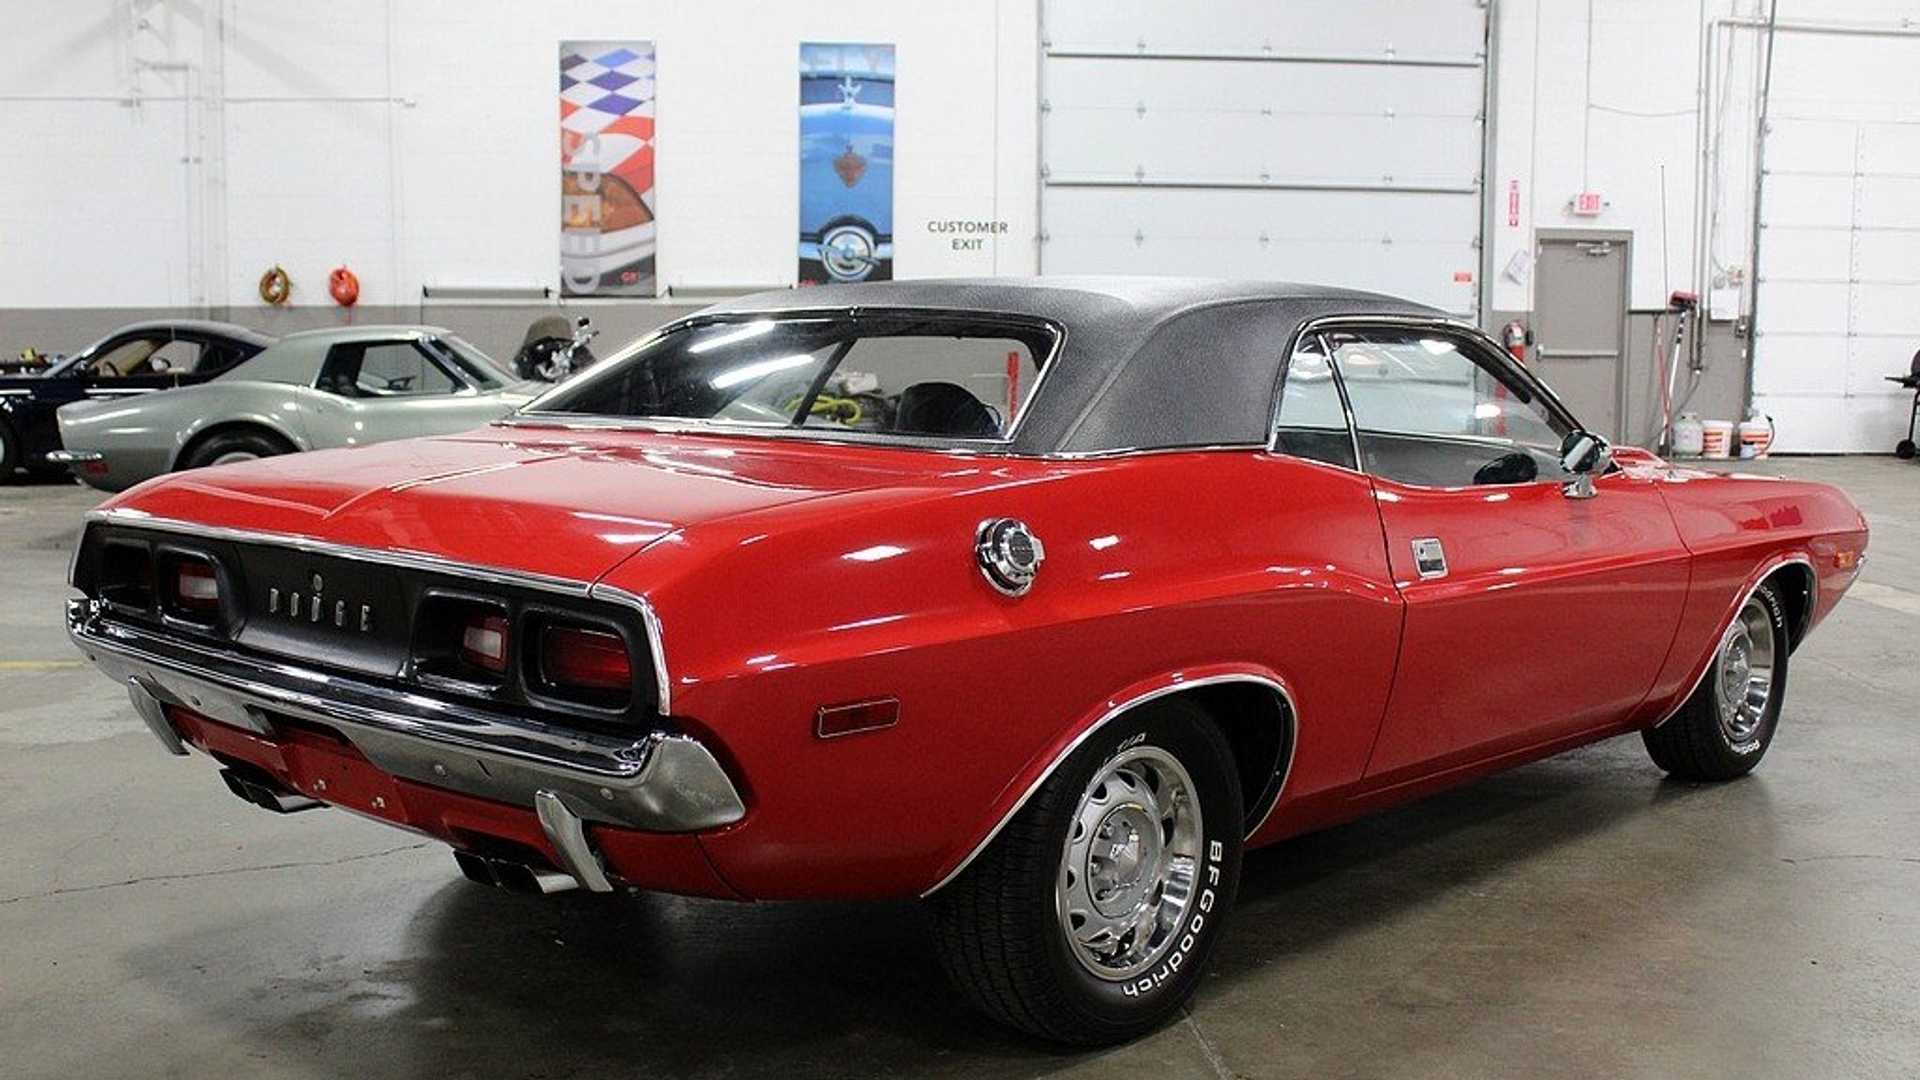 1972 Dodge Challenger >> Rally Red 1972 Dodge Challenger Shows Off Its Muscles